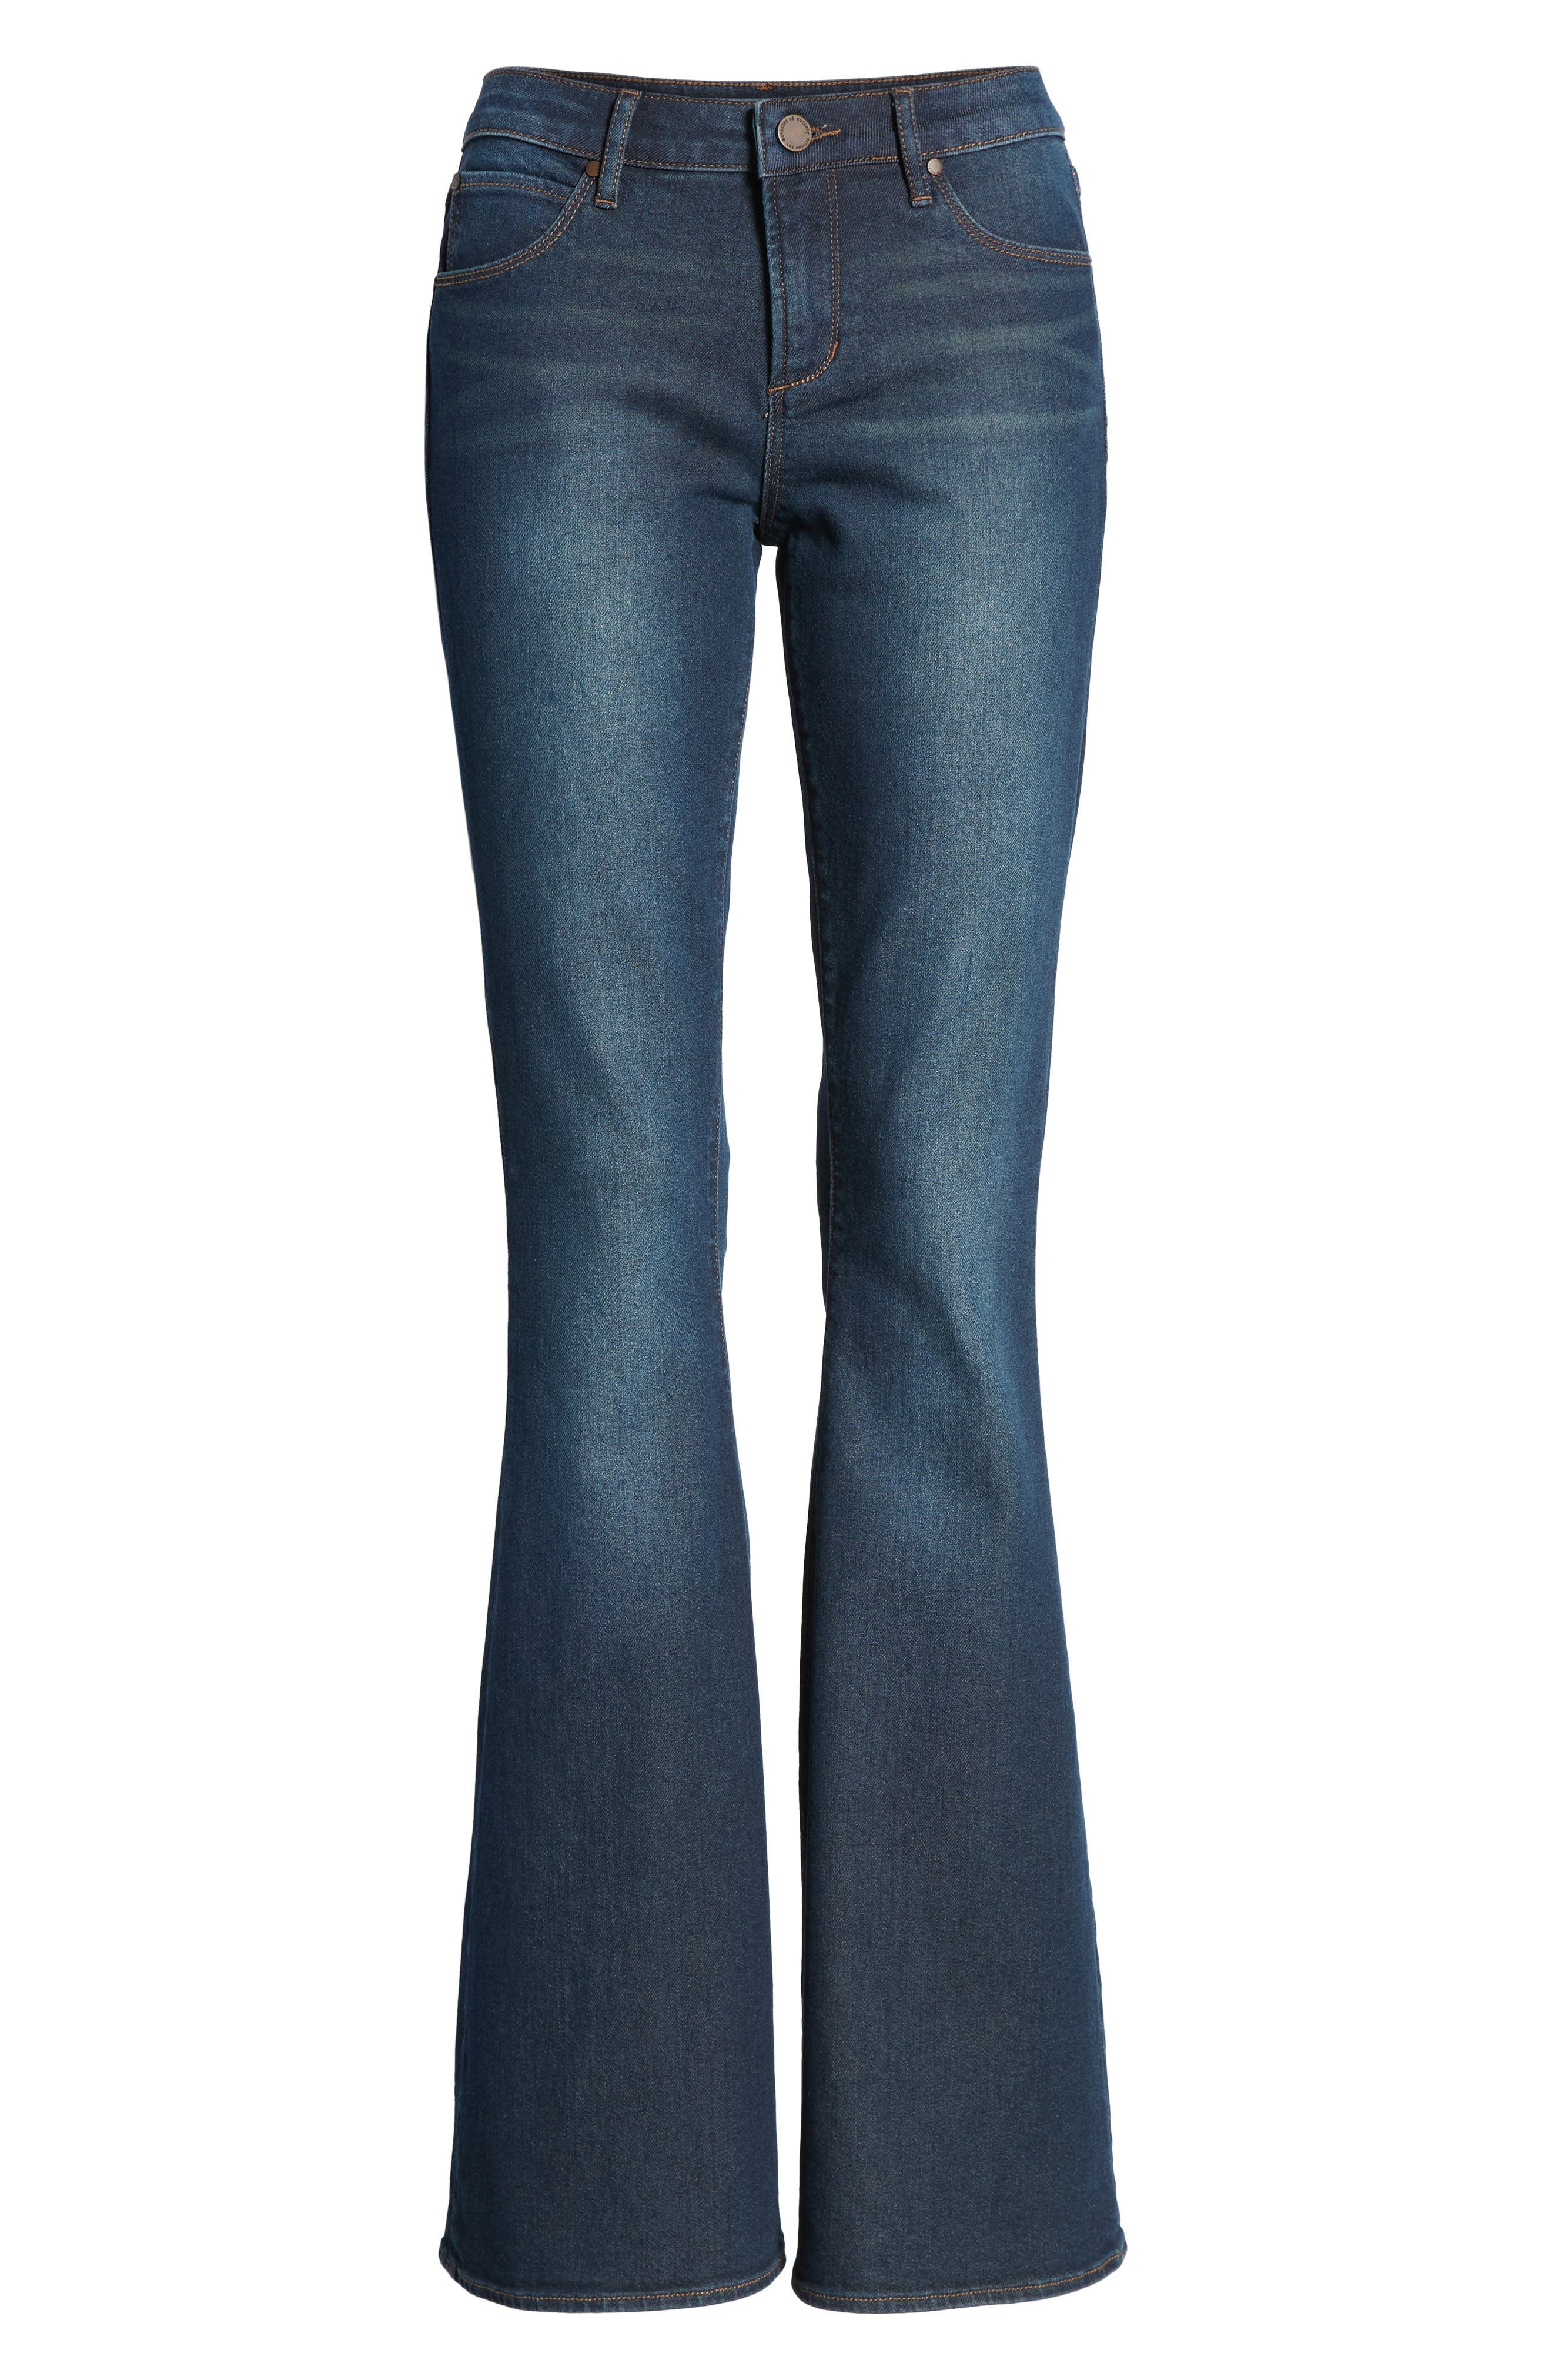 ARTICLES OF SOCIETY, Faith Flare Jeans, Alternate thumbnail 7, color, 467